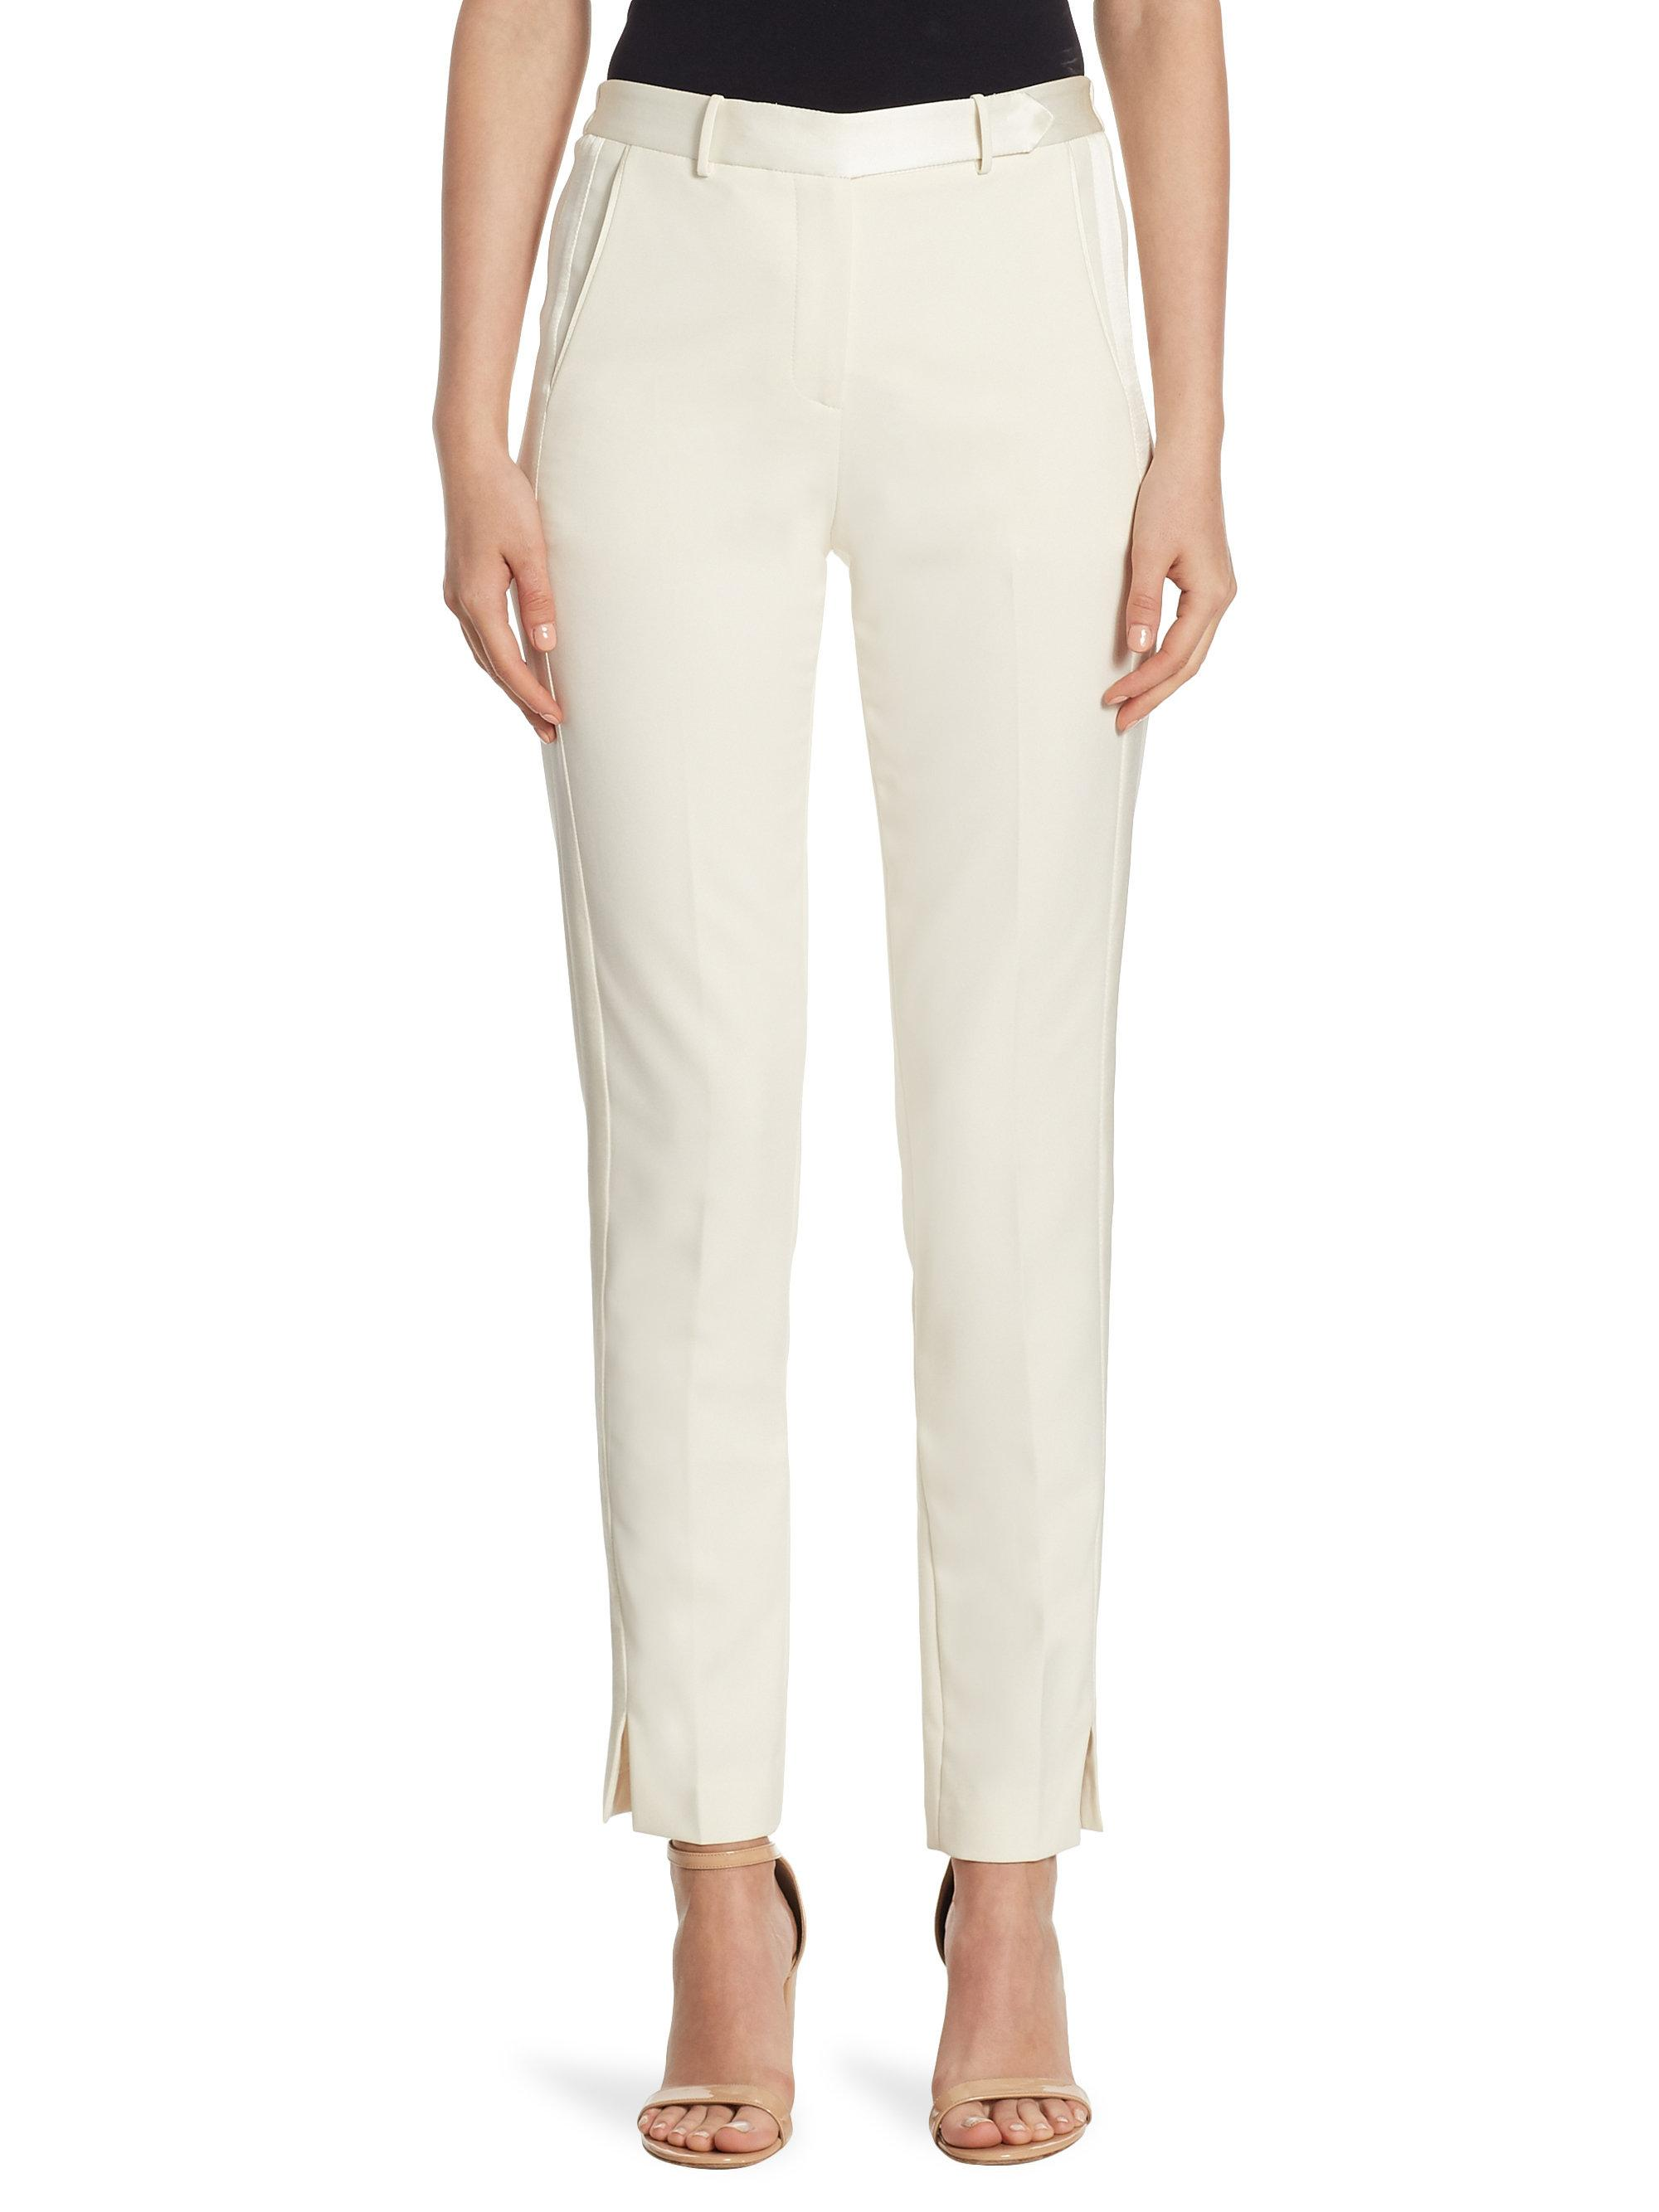 Buy Cheap Price Halston Heritage Woman Stretch-knit Tapered Pants White Size 10 Halston Heritage Original Sale Online Clearance Big Discount Buy Cheap Best Wholesale TPqqP7kbe